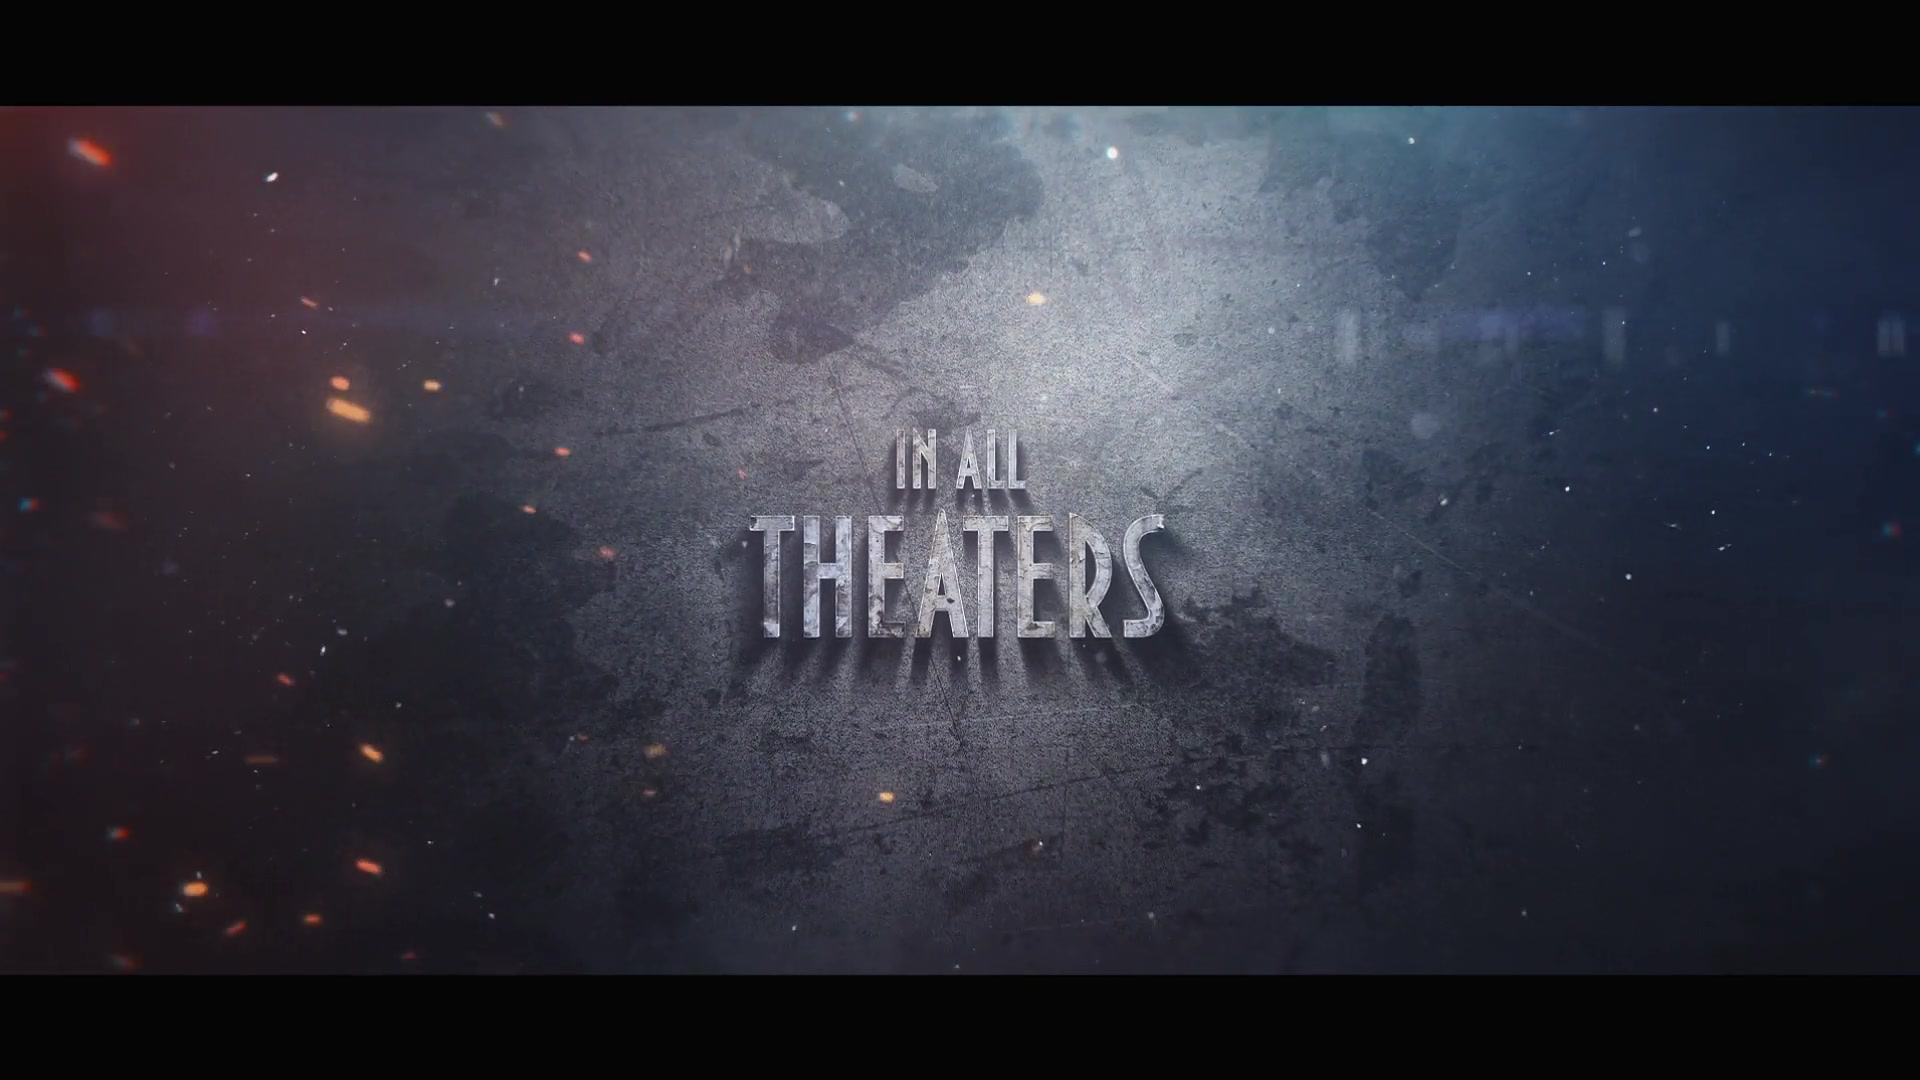 Cinematic Trailer - Download Videohive 22853731